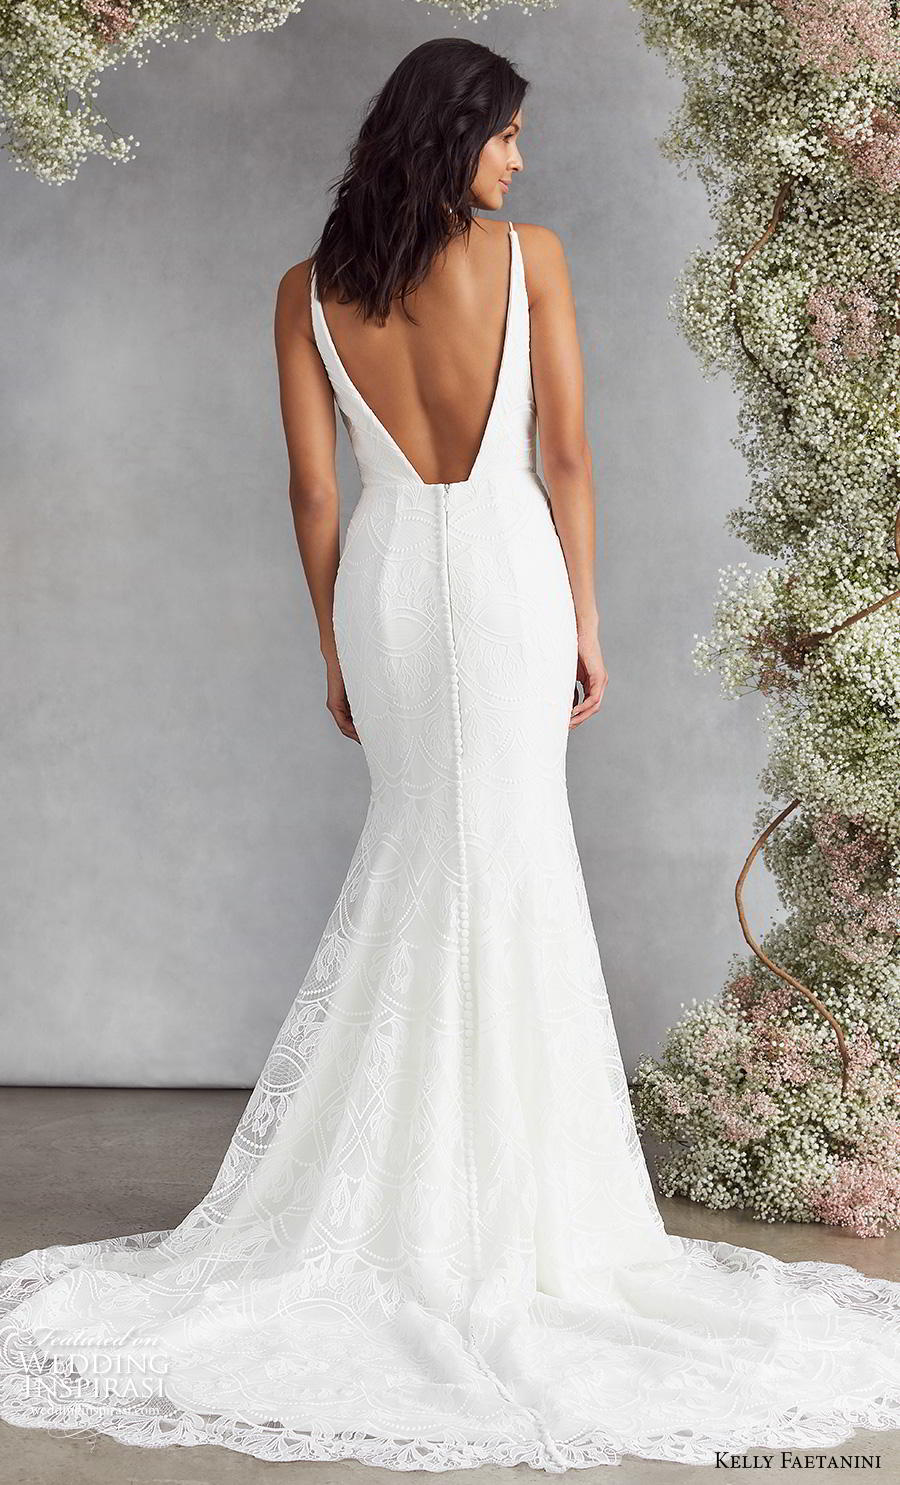 kelly faetanini fall 2020 bridal thin strap deep funnel v neck light embellishment elegant fit and flare wedding dress backless low v back chapel train (11) bv